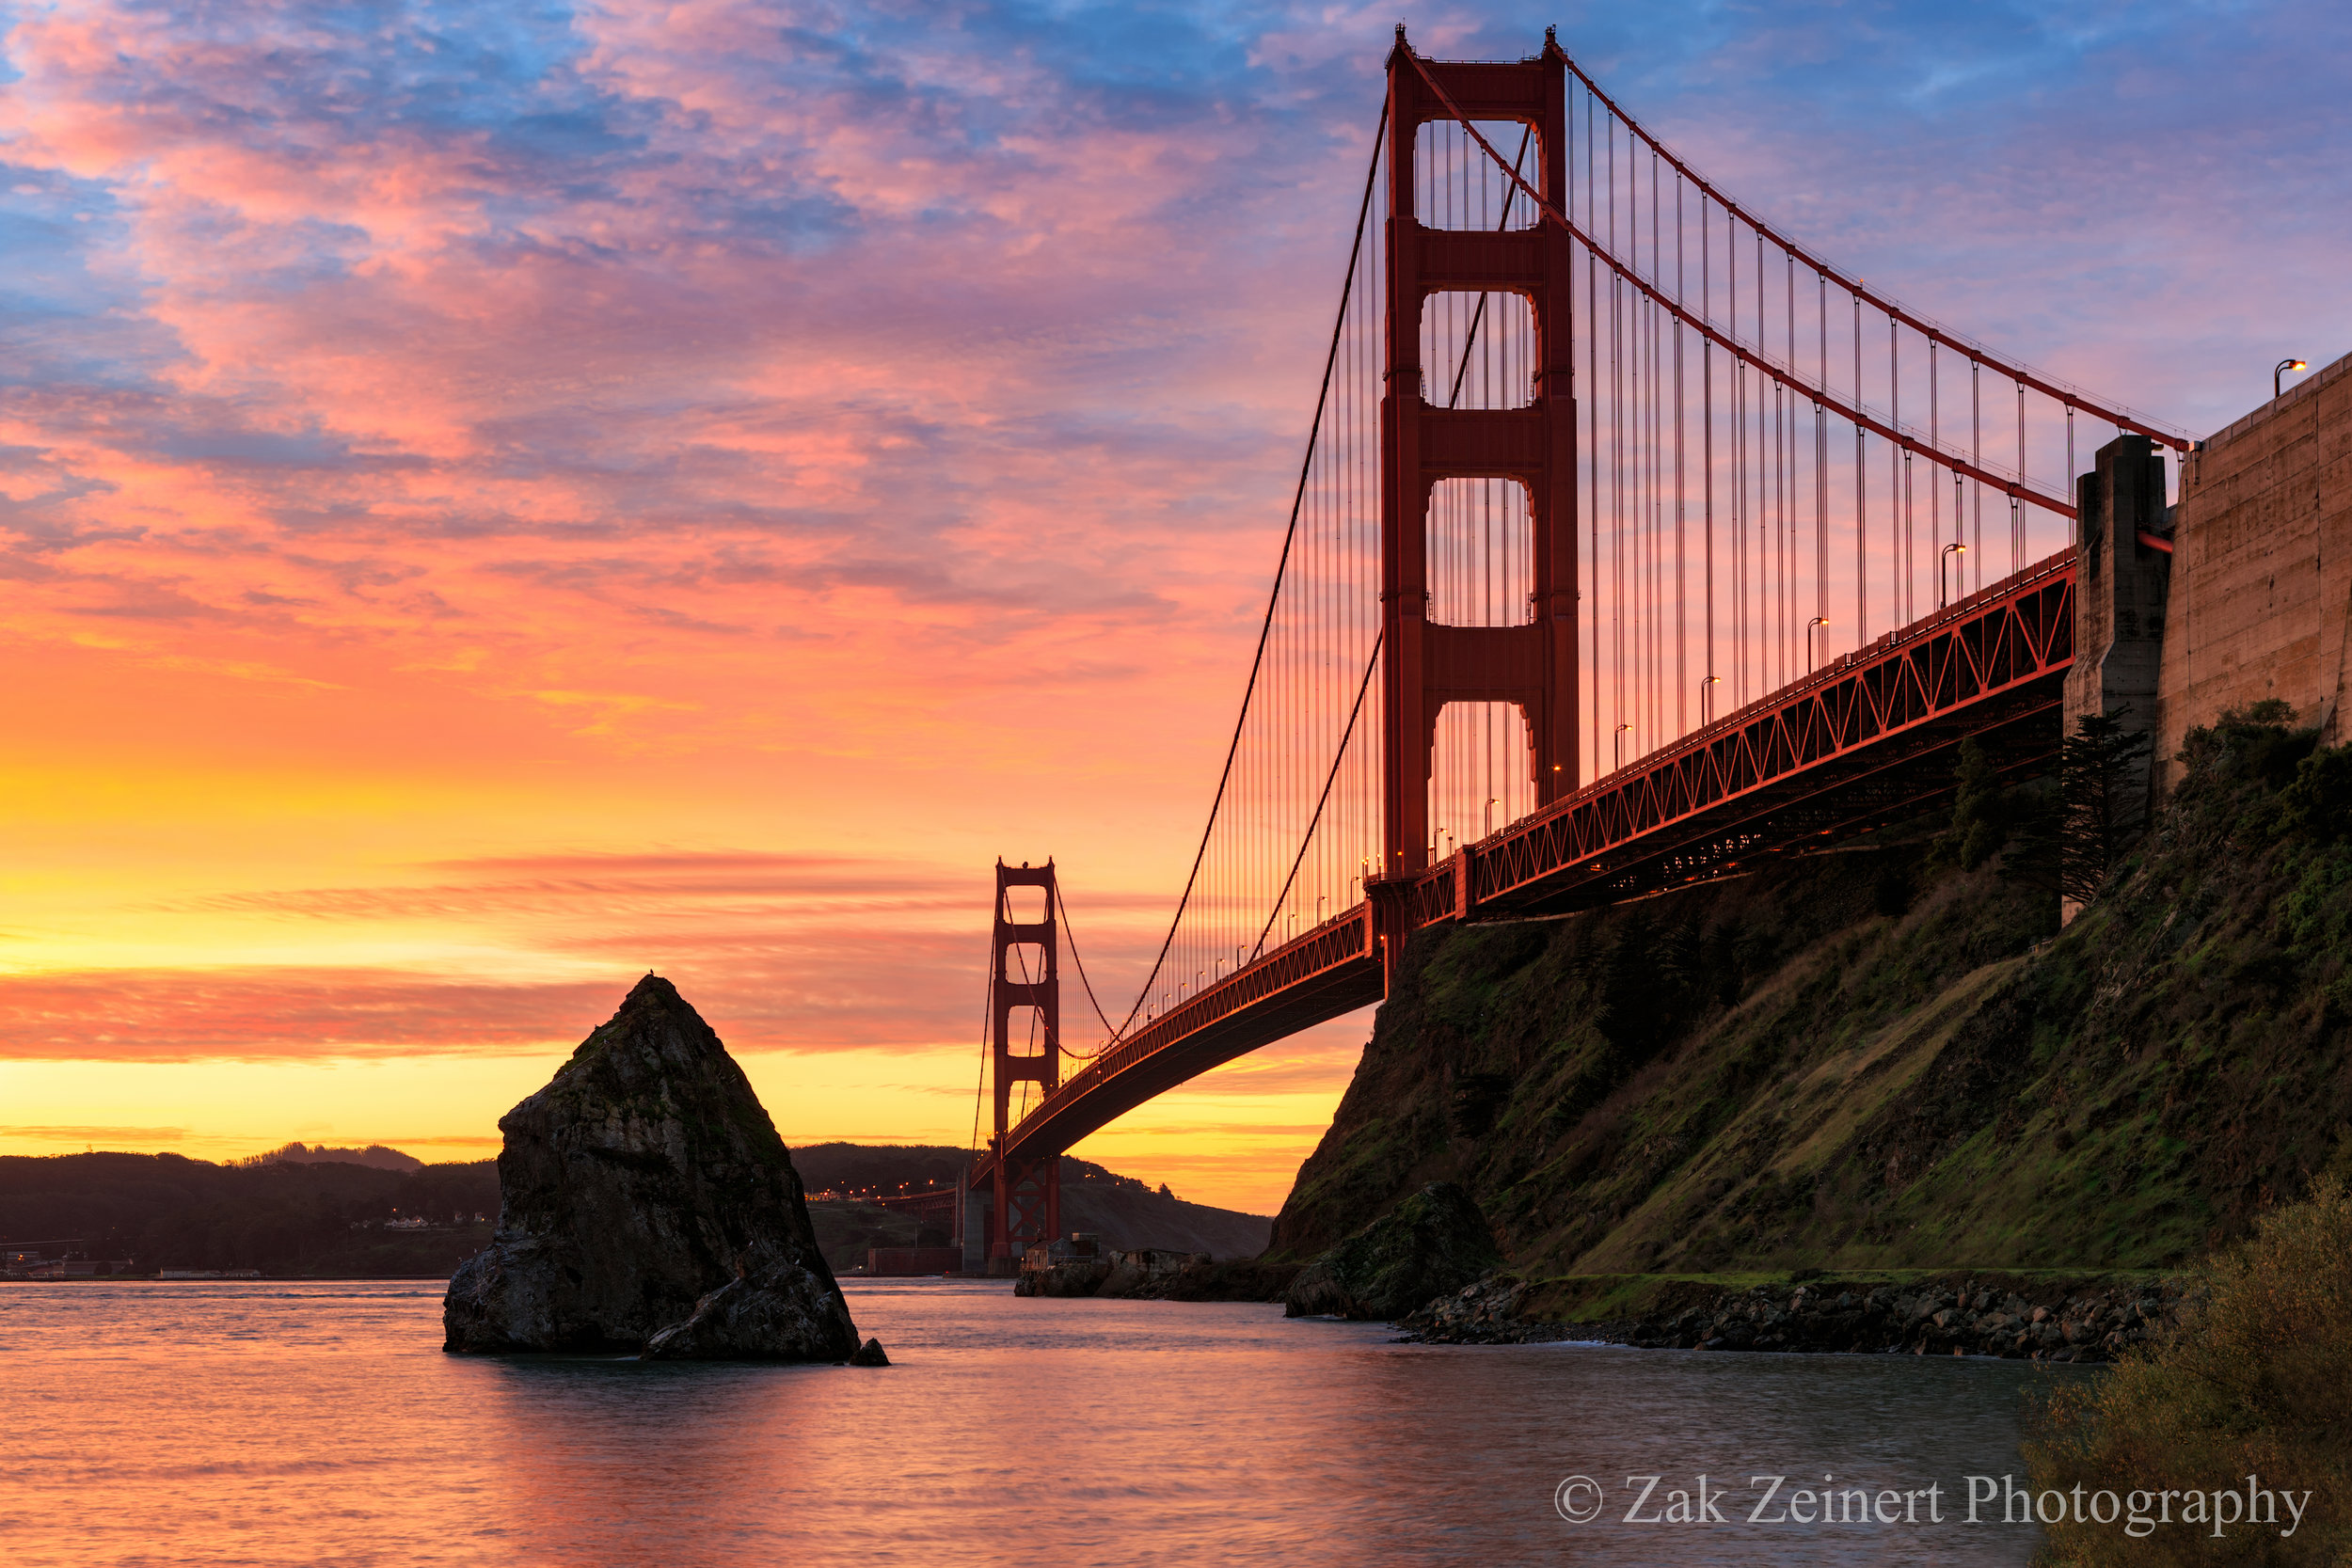 Golden Gate Bridge at Sunrise not far from where I slept the previous night